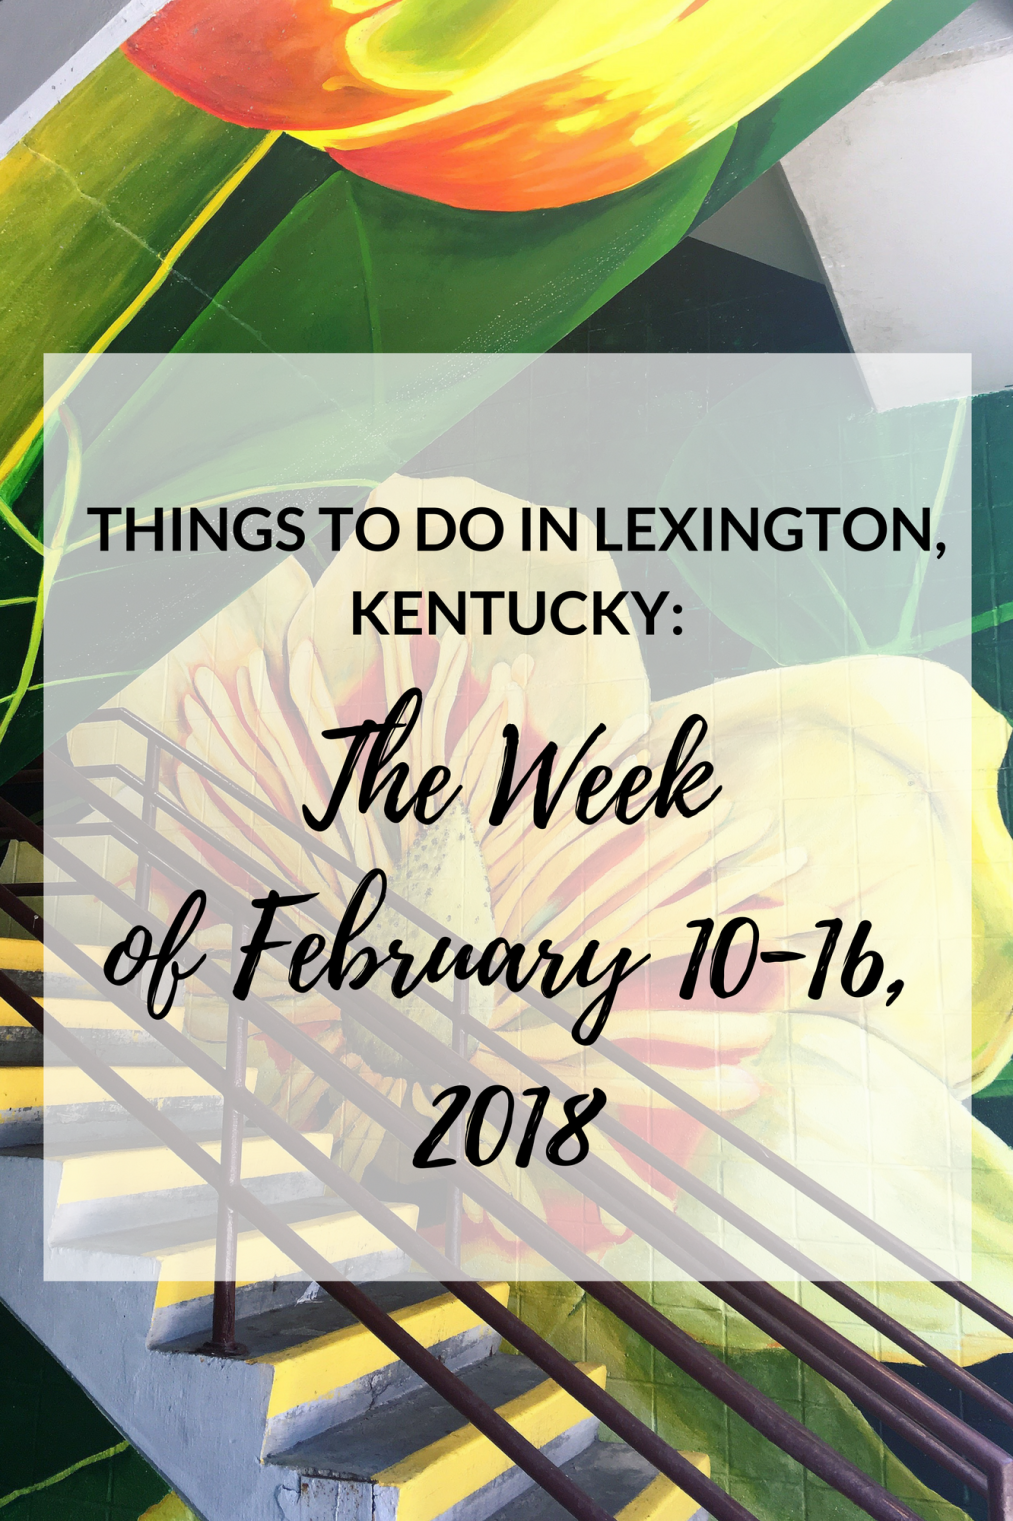 Things to do in lexington kentucky the week of february 10 16 things to do lexington kentucky february 2018 solutioingenieria Choice Image